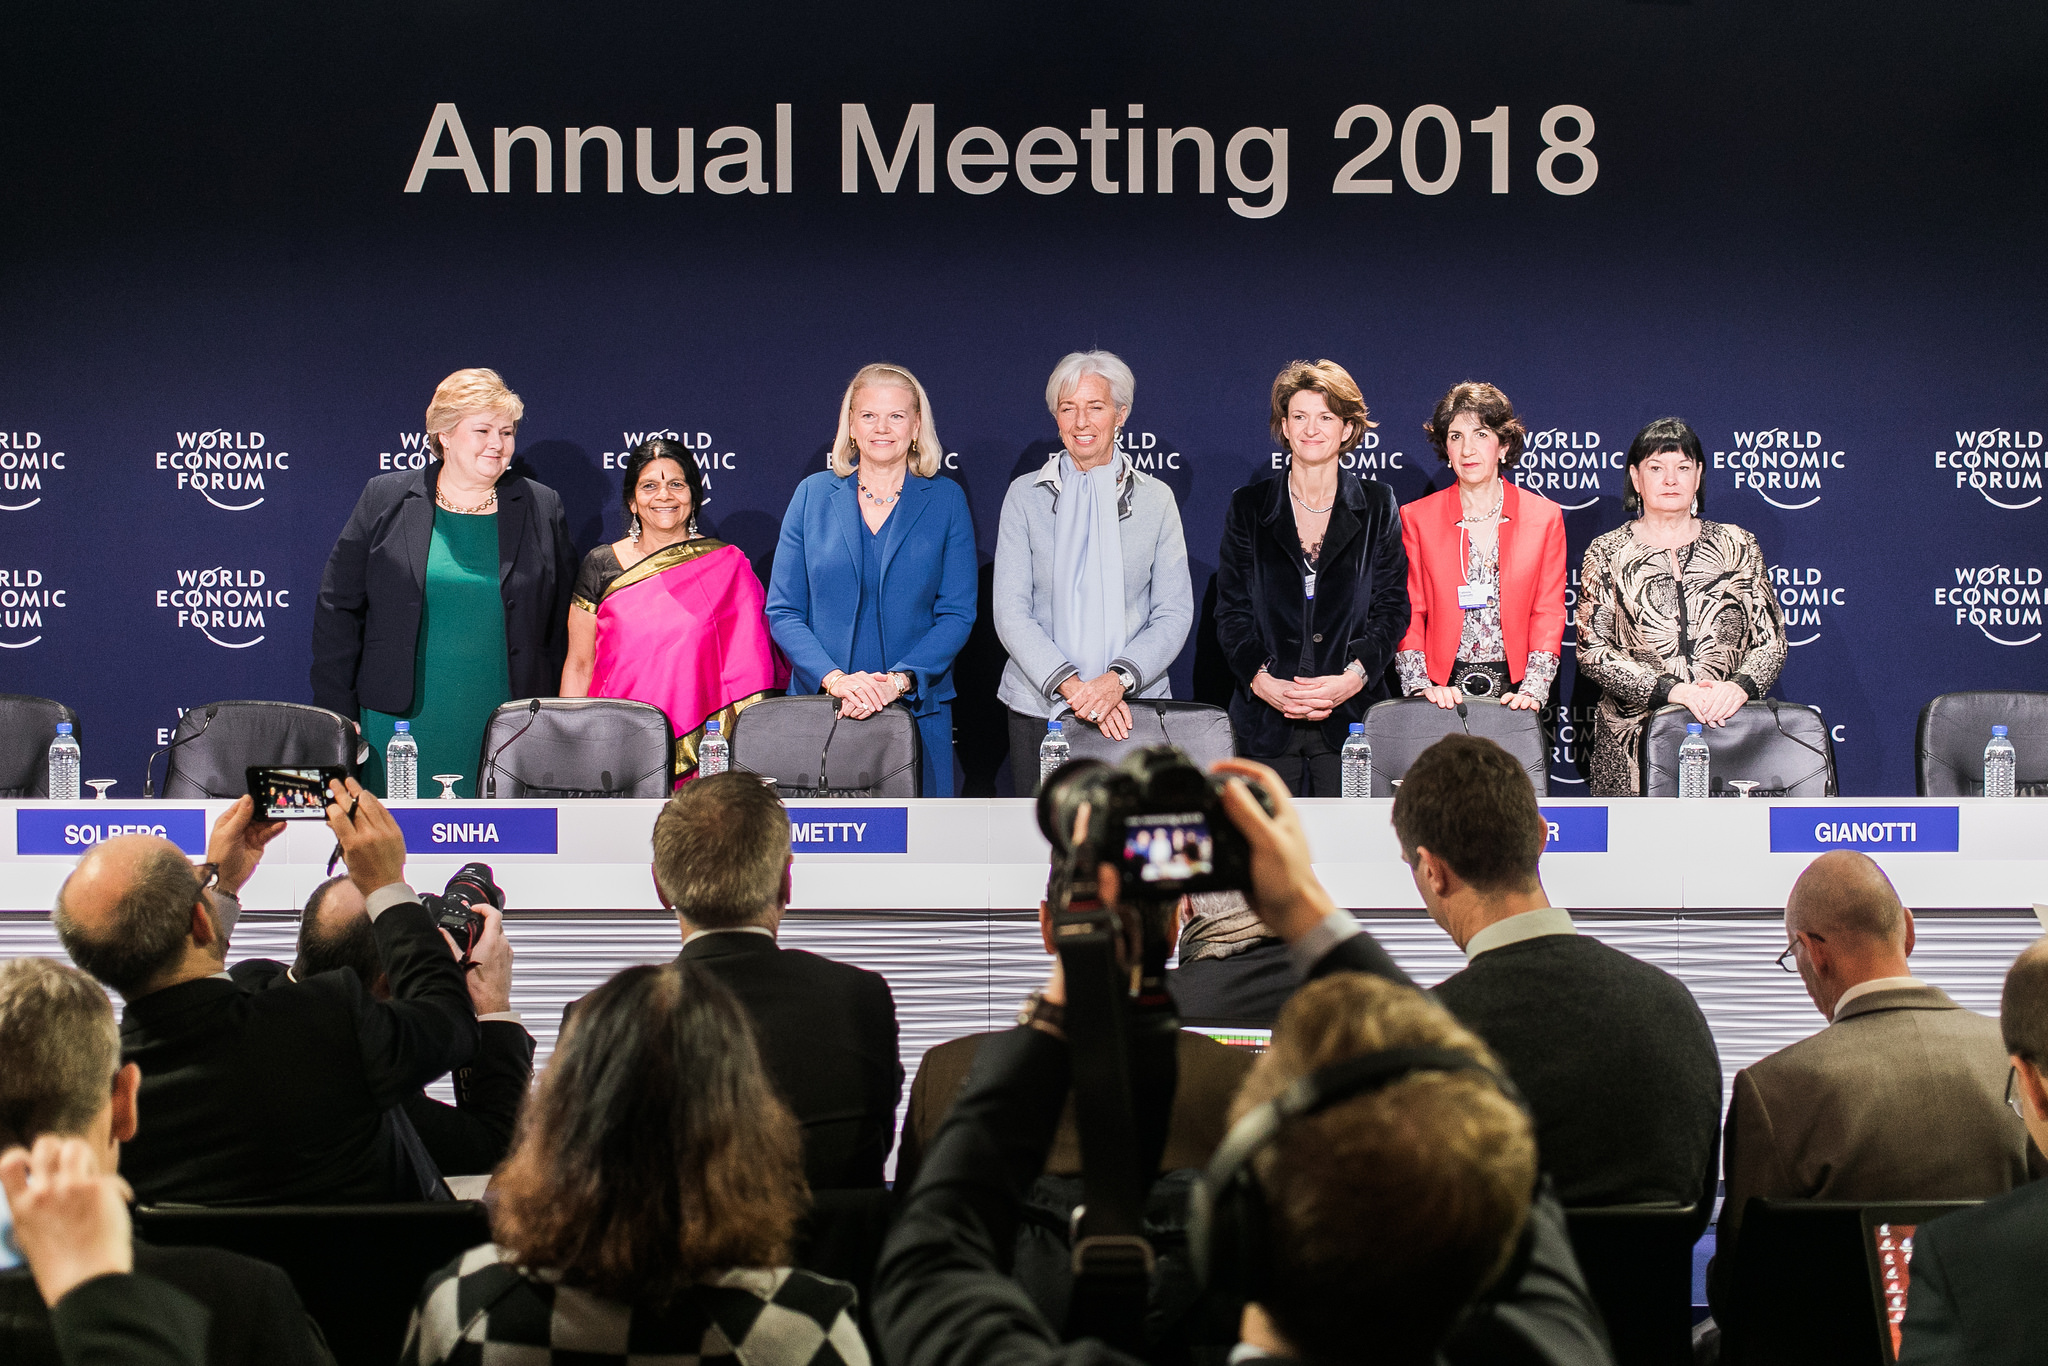 Rueda de prensa de presentación del consejo del Foro de Davos 2018. Copyright by World Economic Forum / Jakob Polacsek